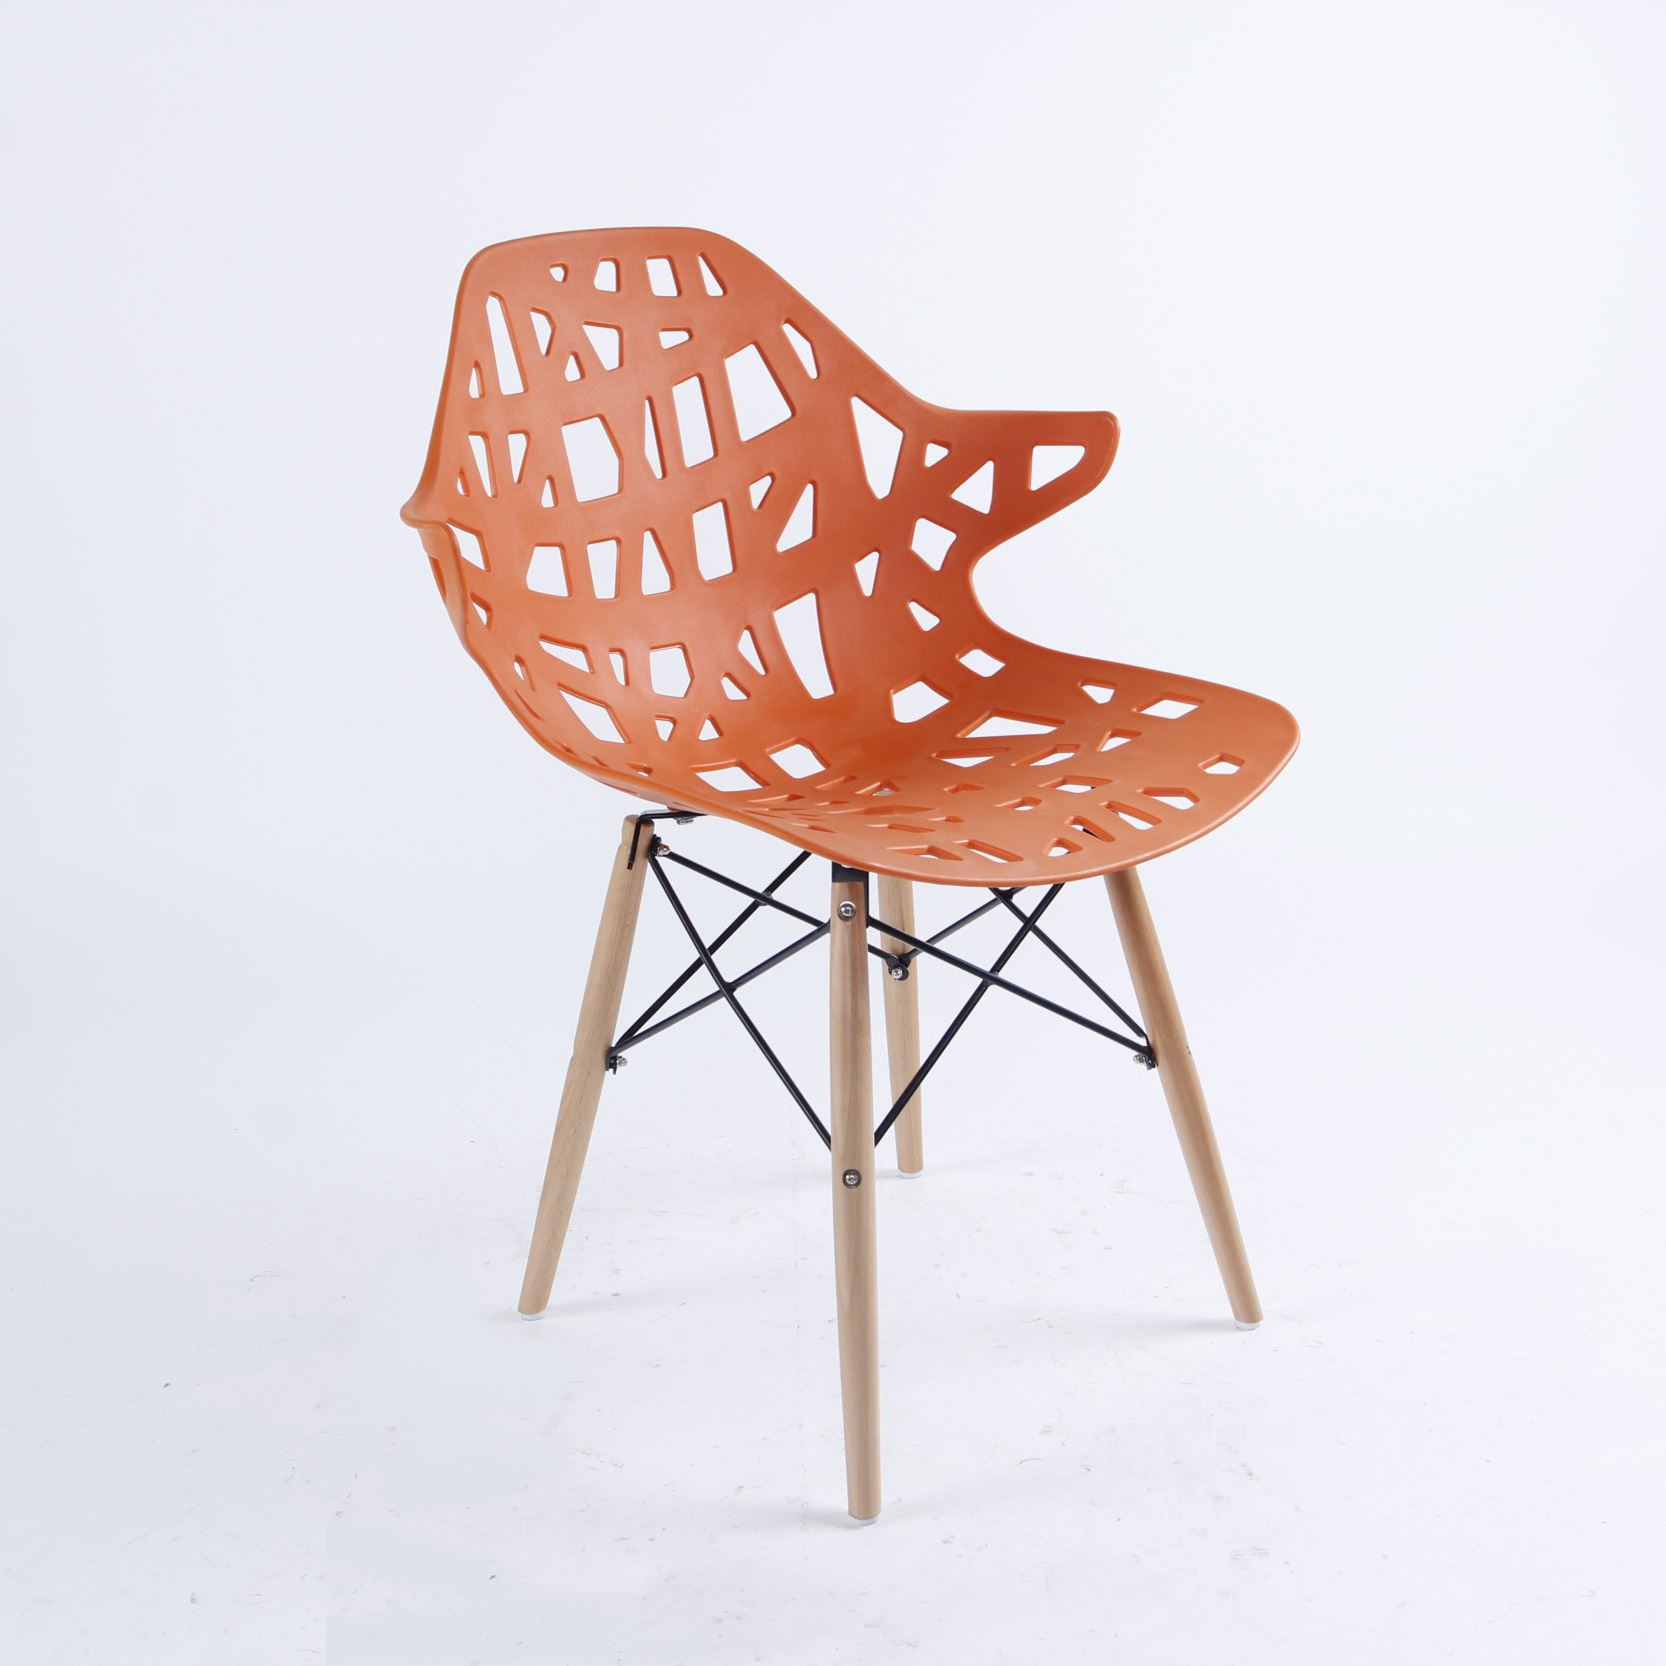 Charles Ray Eames Eiffel Inspired Dining Chair The Nest EBay